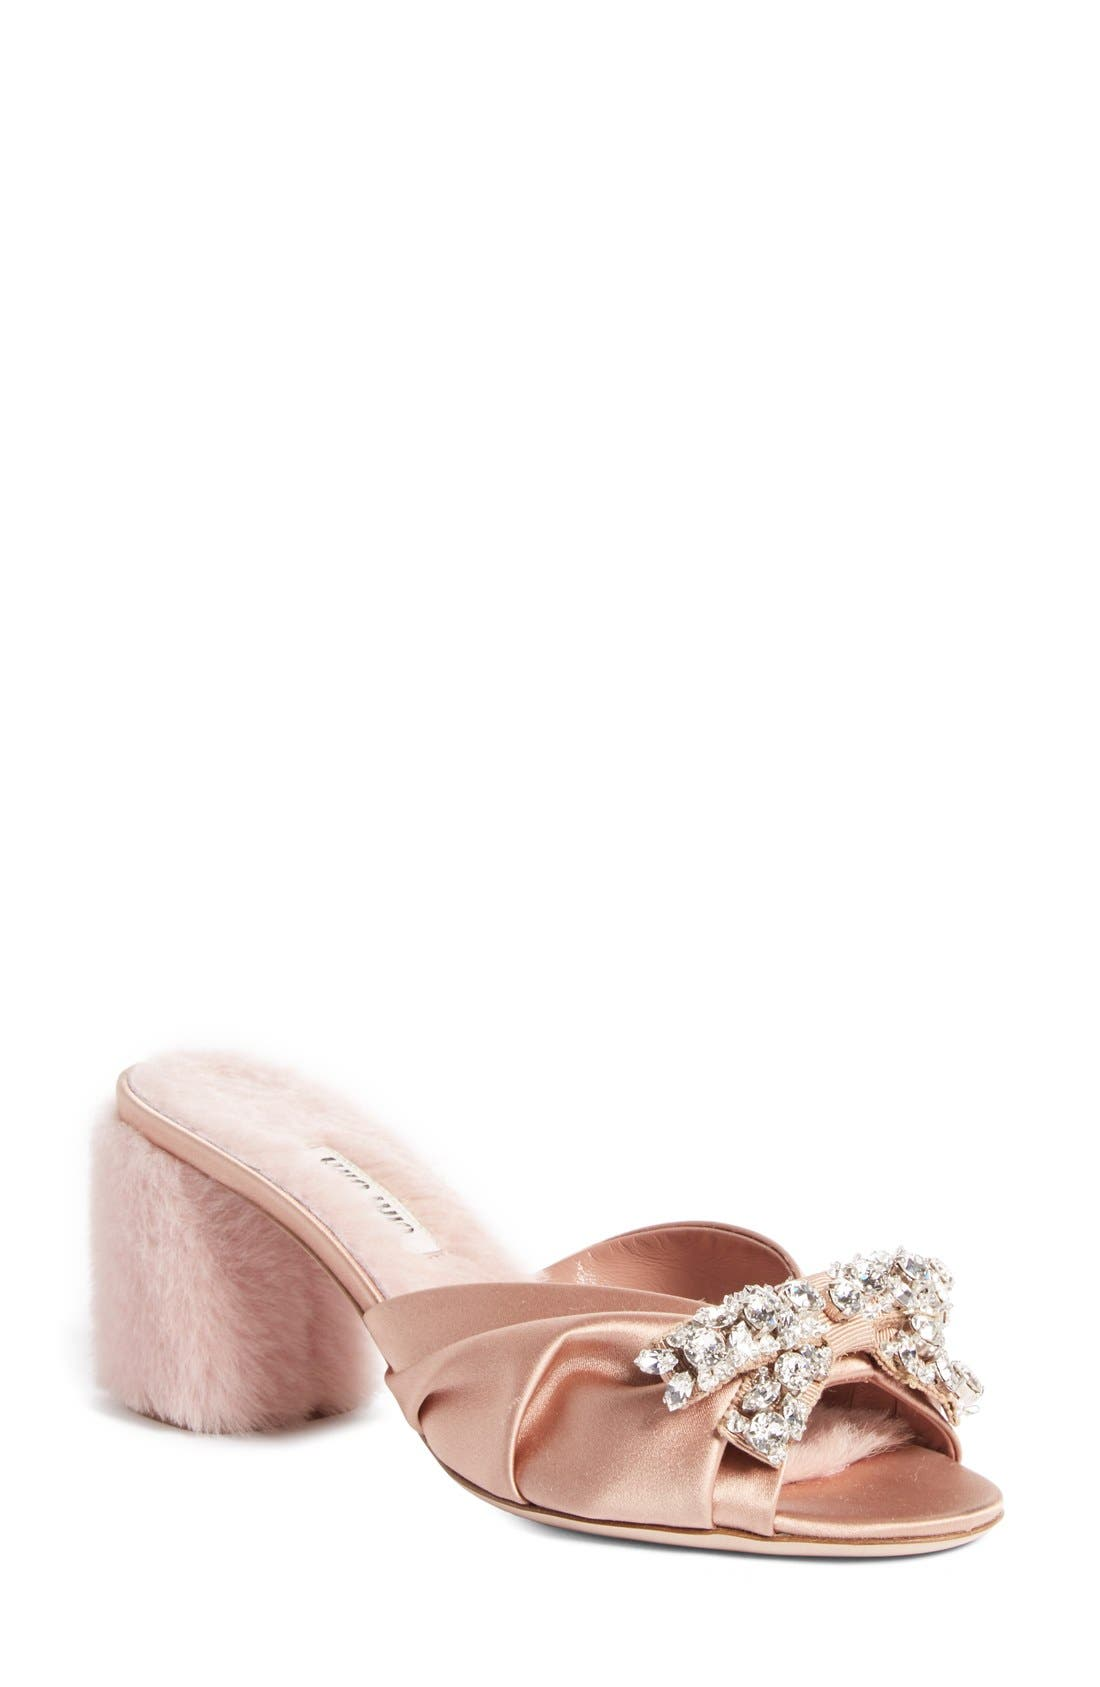 Alternate Image 1 Selected - Miu Miu Crystal Embellished Slide Sandal (Women)